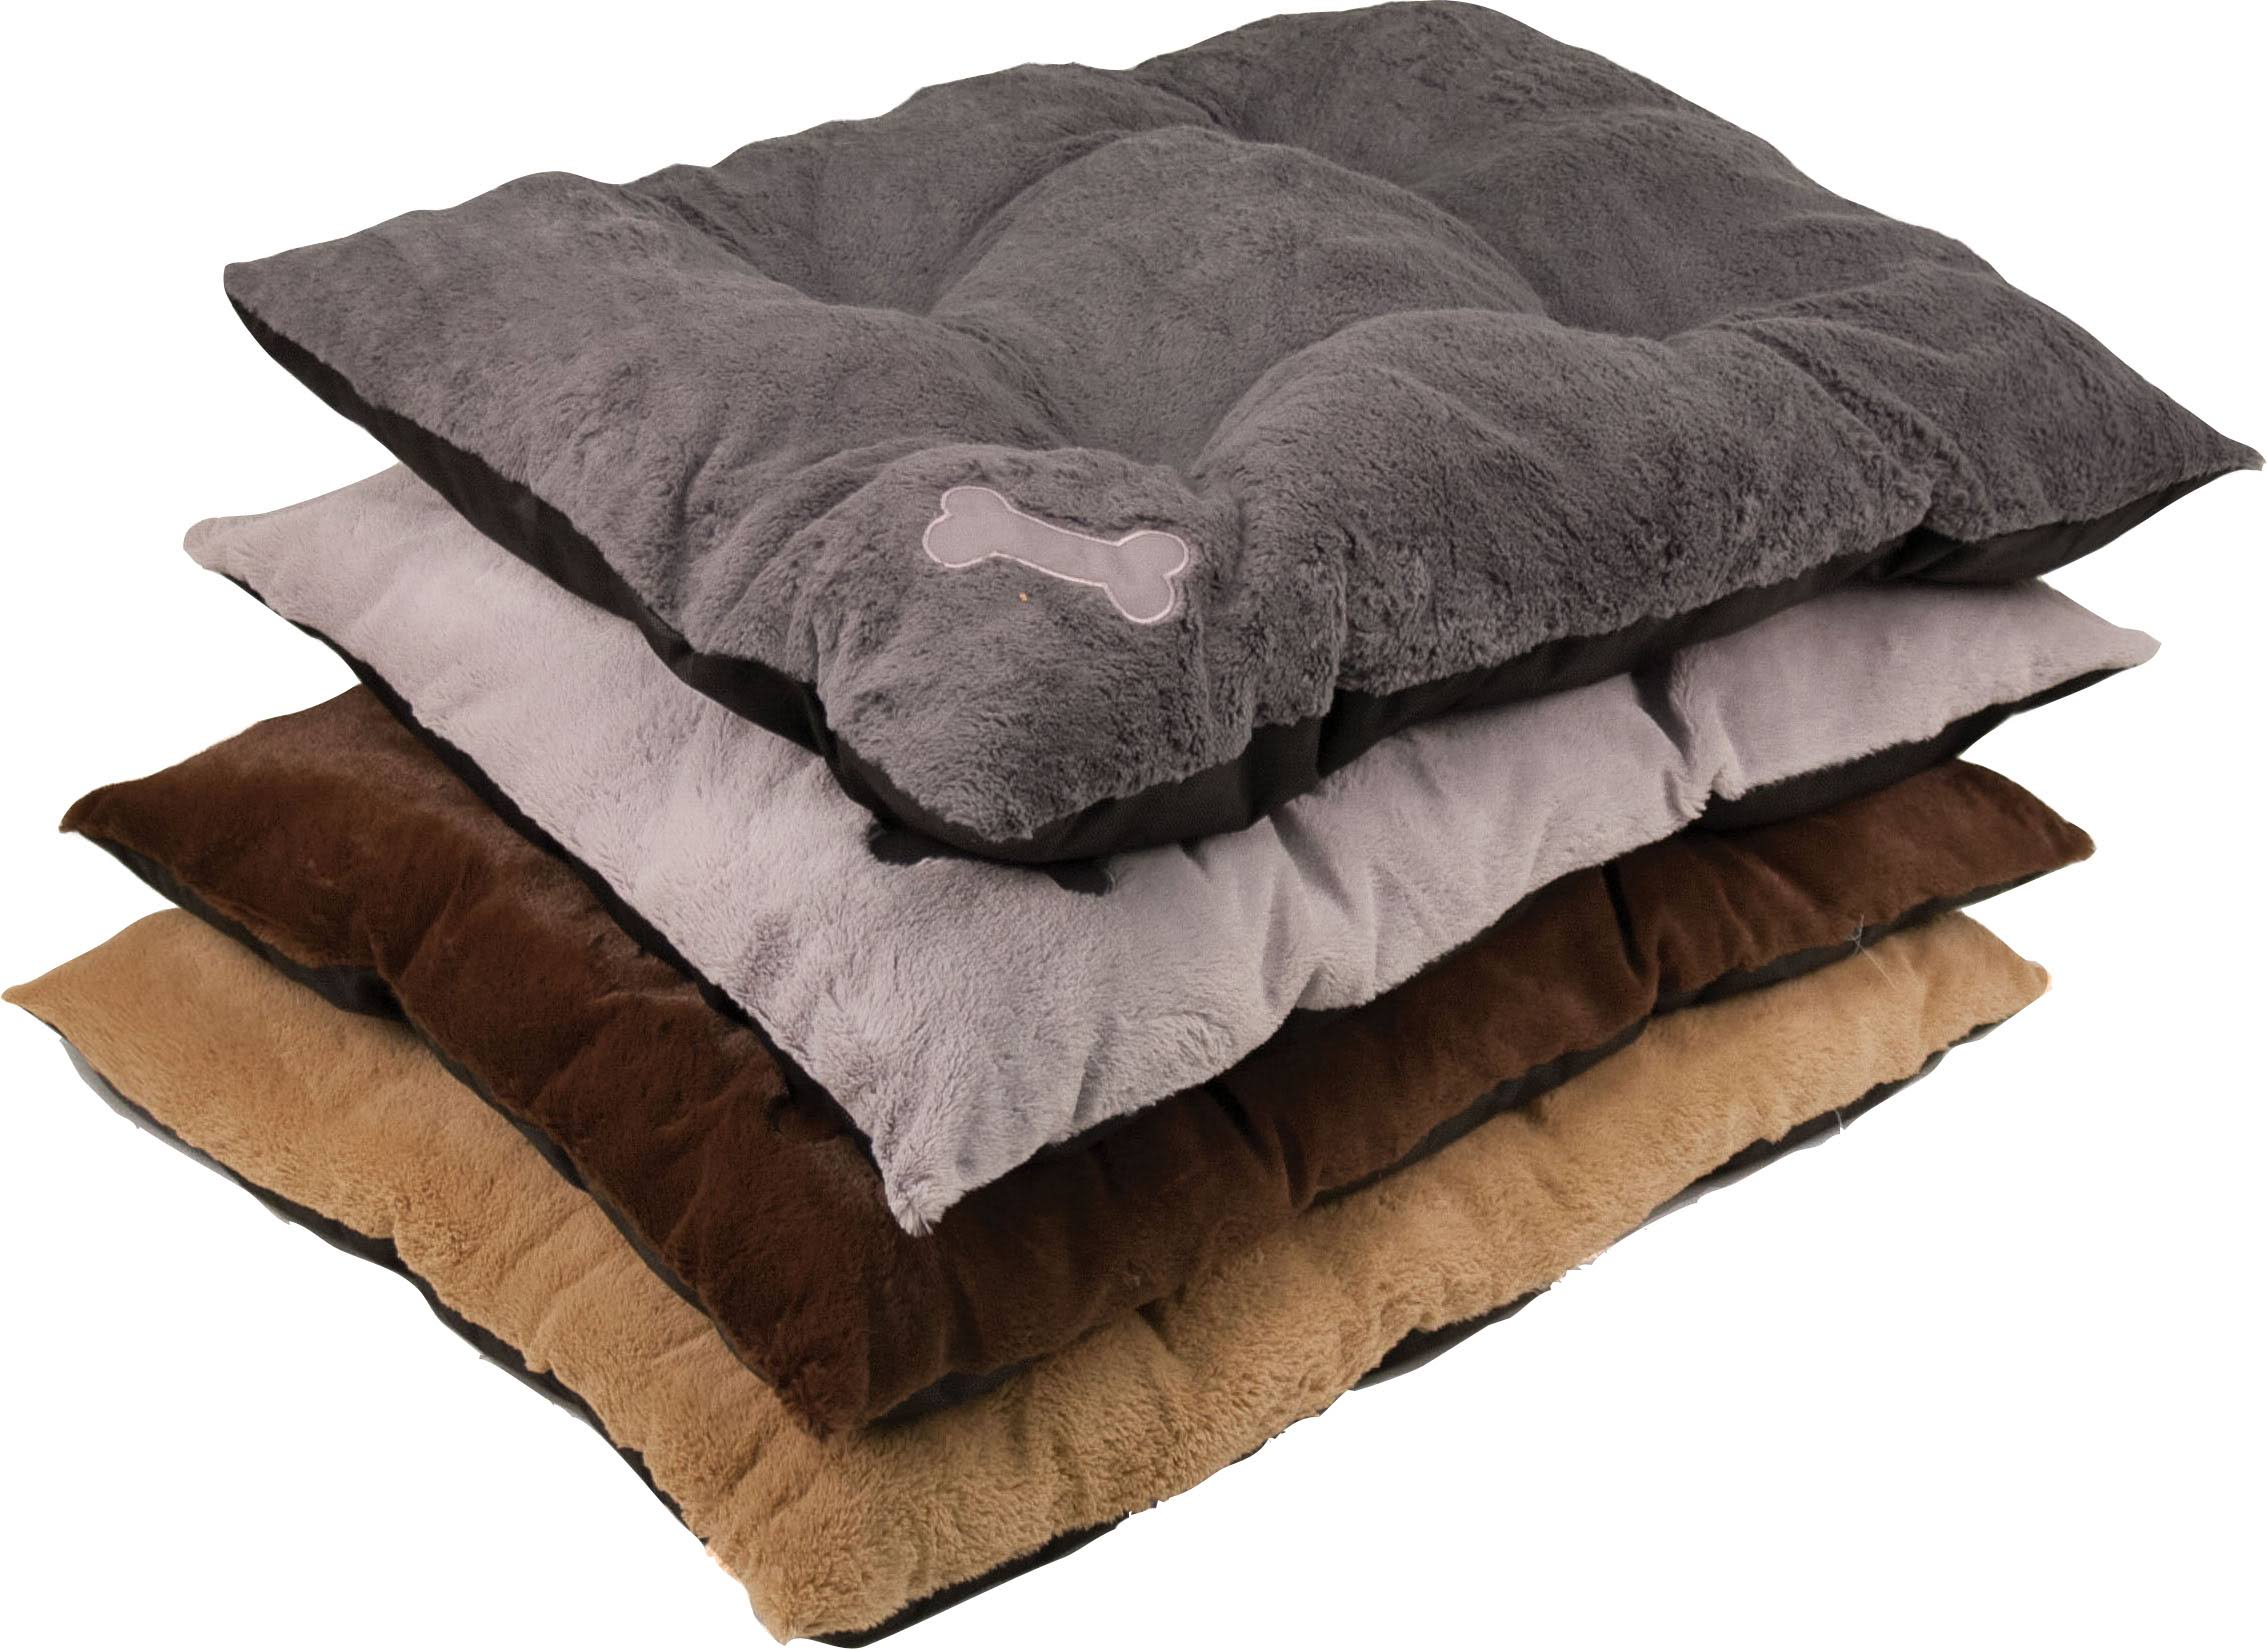 Dallas 100211186 27 x 36 in. Cozy Tufted Kennel Pet Pad